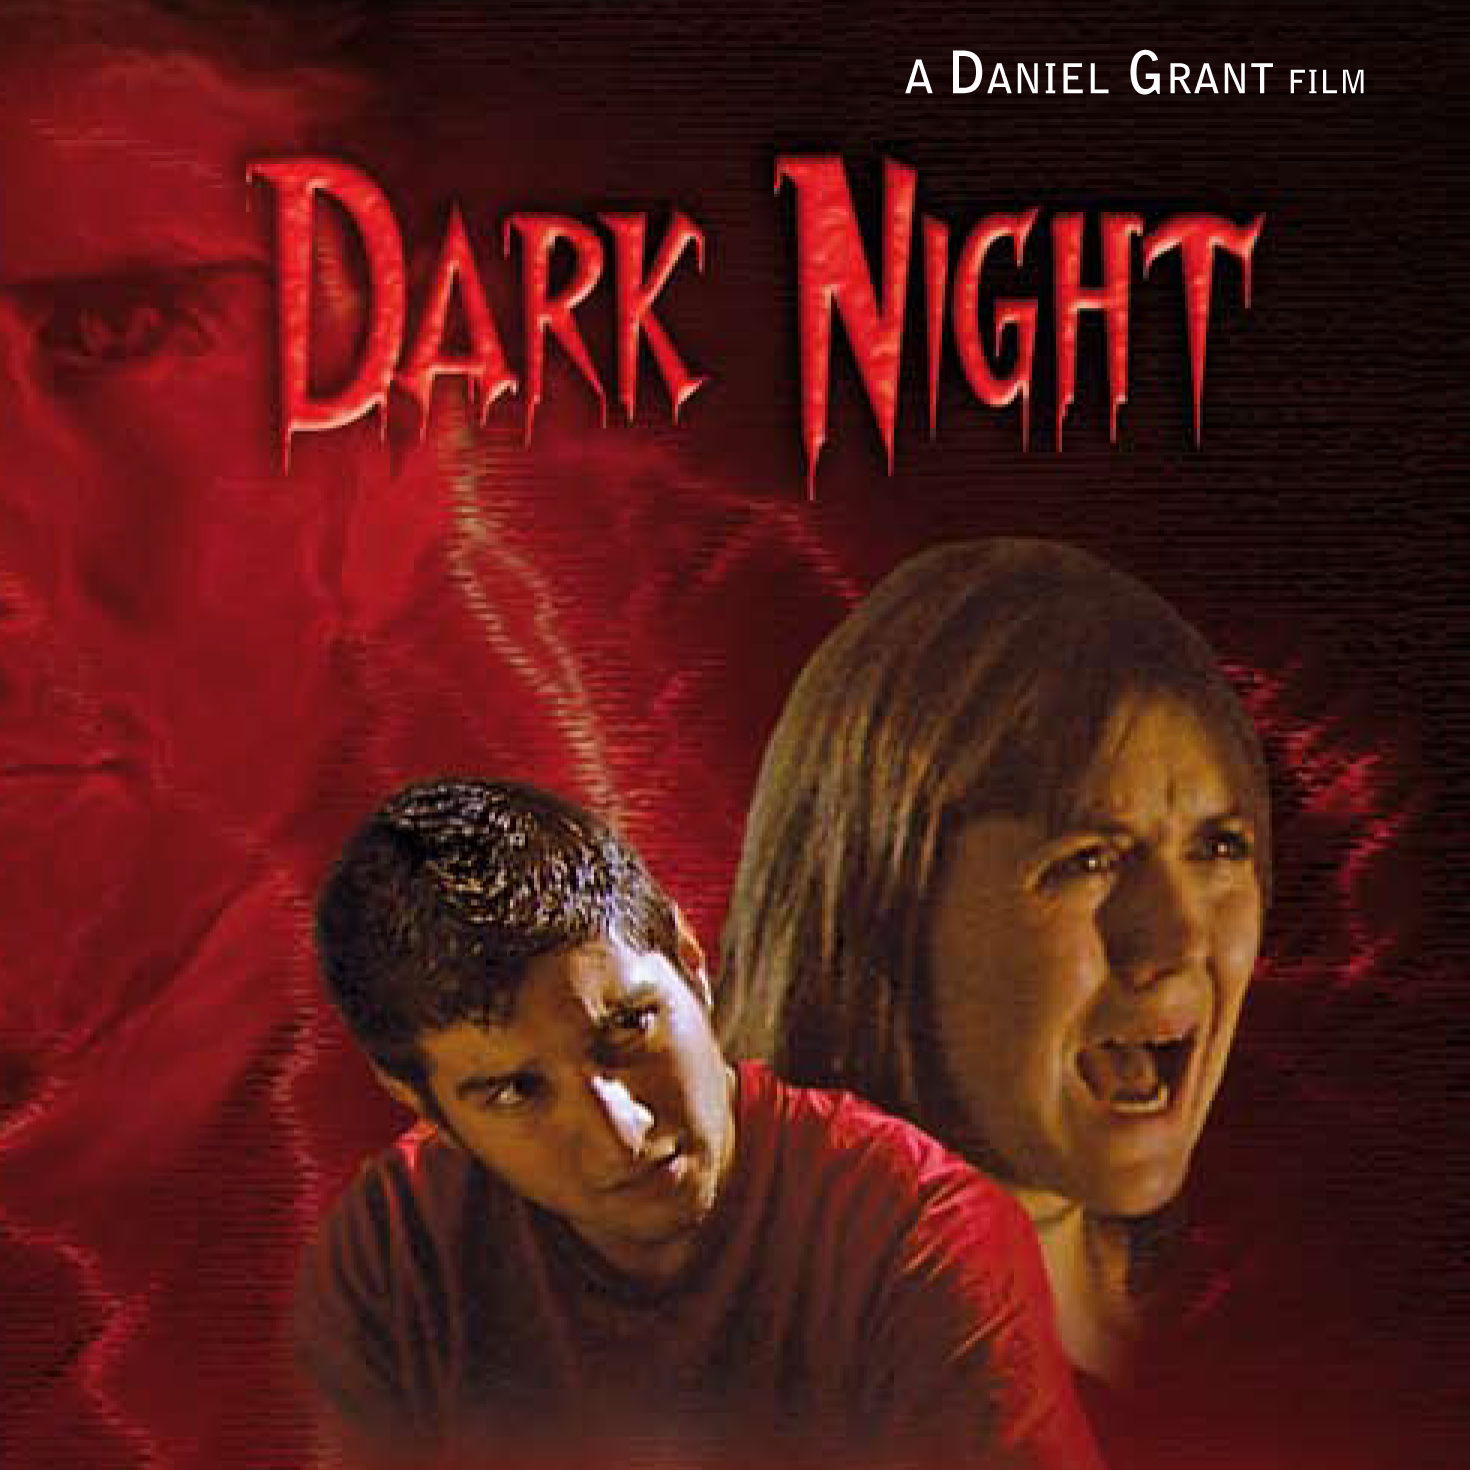 Spiffing Films, Dark Night - lyrics by Arron Storey